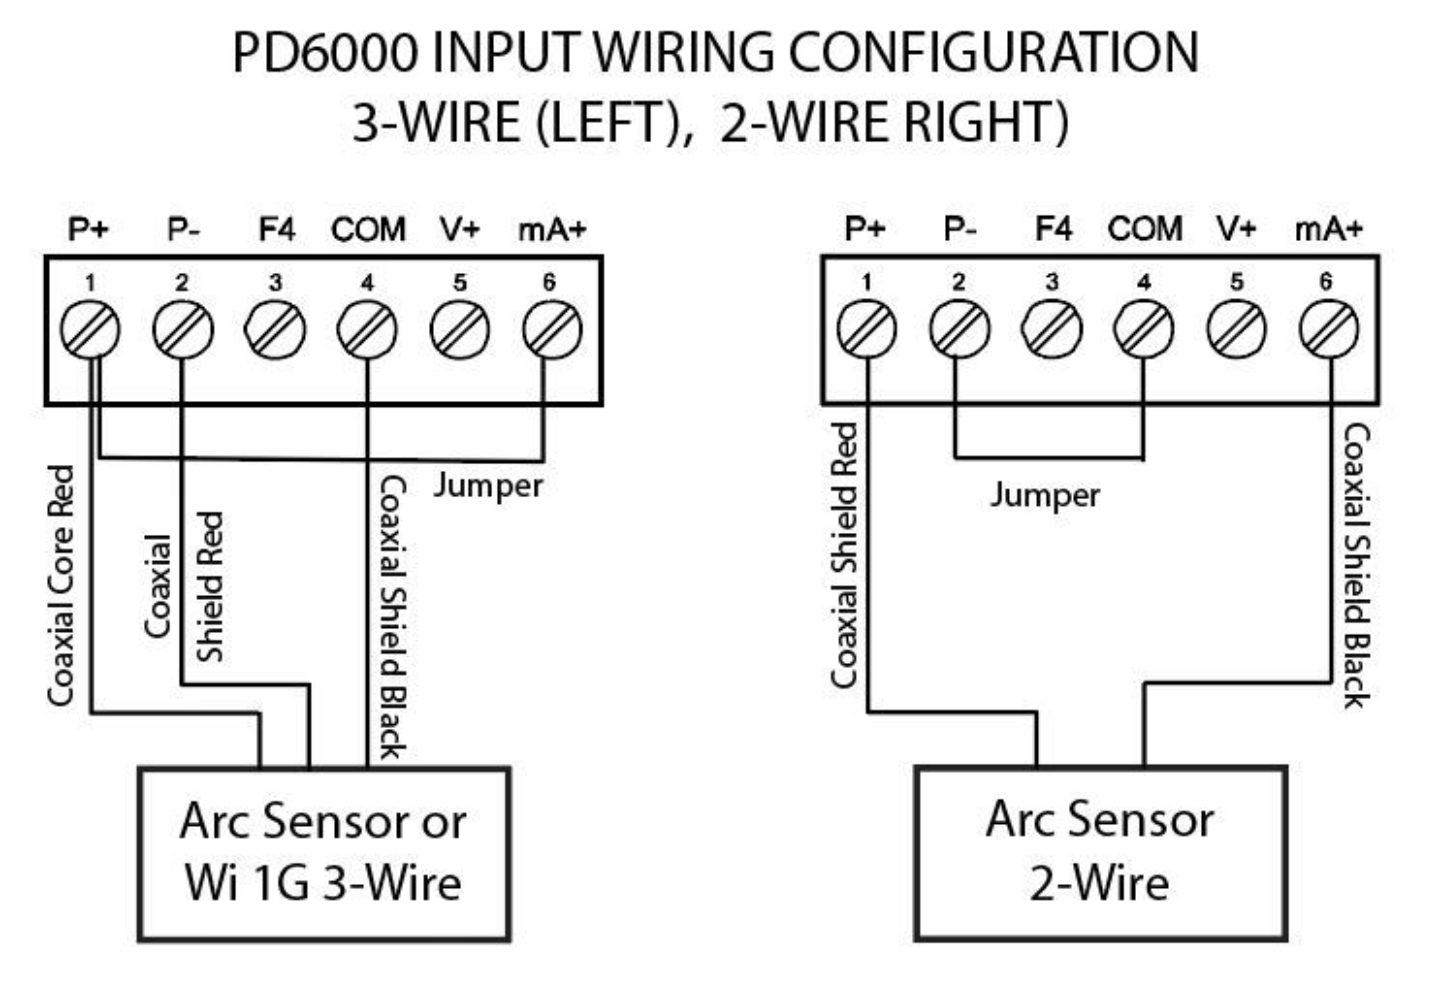 hight resolution of 3 wire sensor wiring is required for visiferm products as well as the addition of the wi 1g bluetooth adapter ref 243460 to any sensor